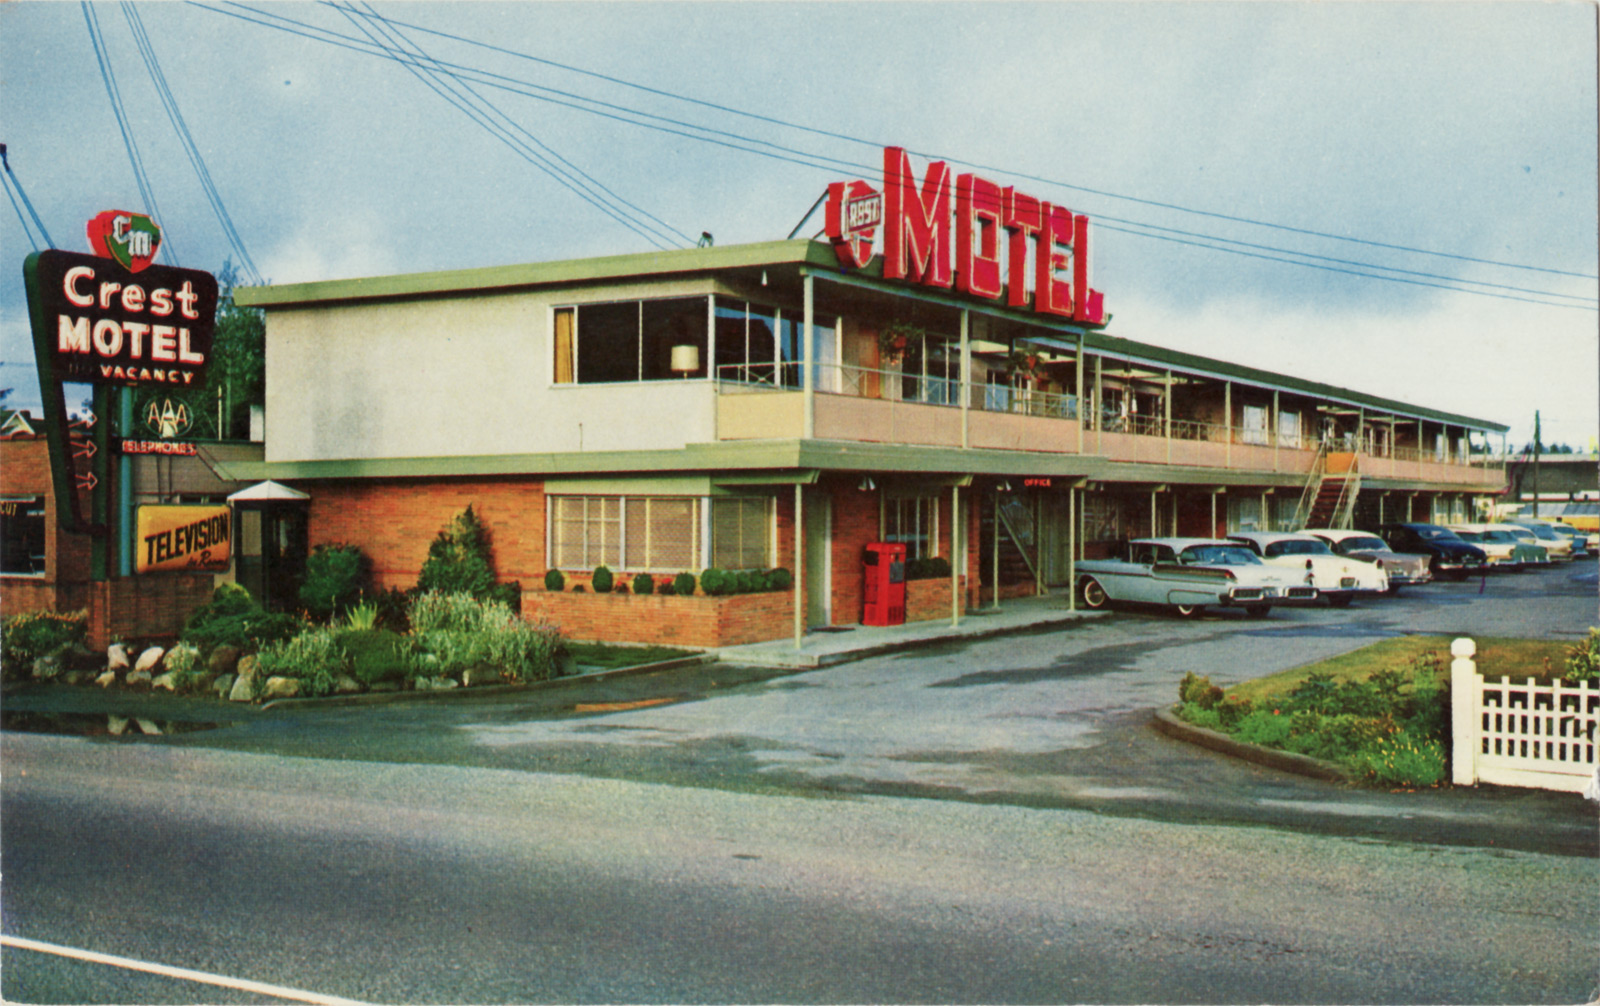 Amazon.com-ing: Motels in Brazil